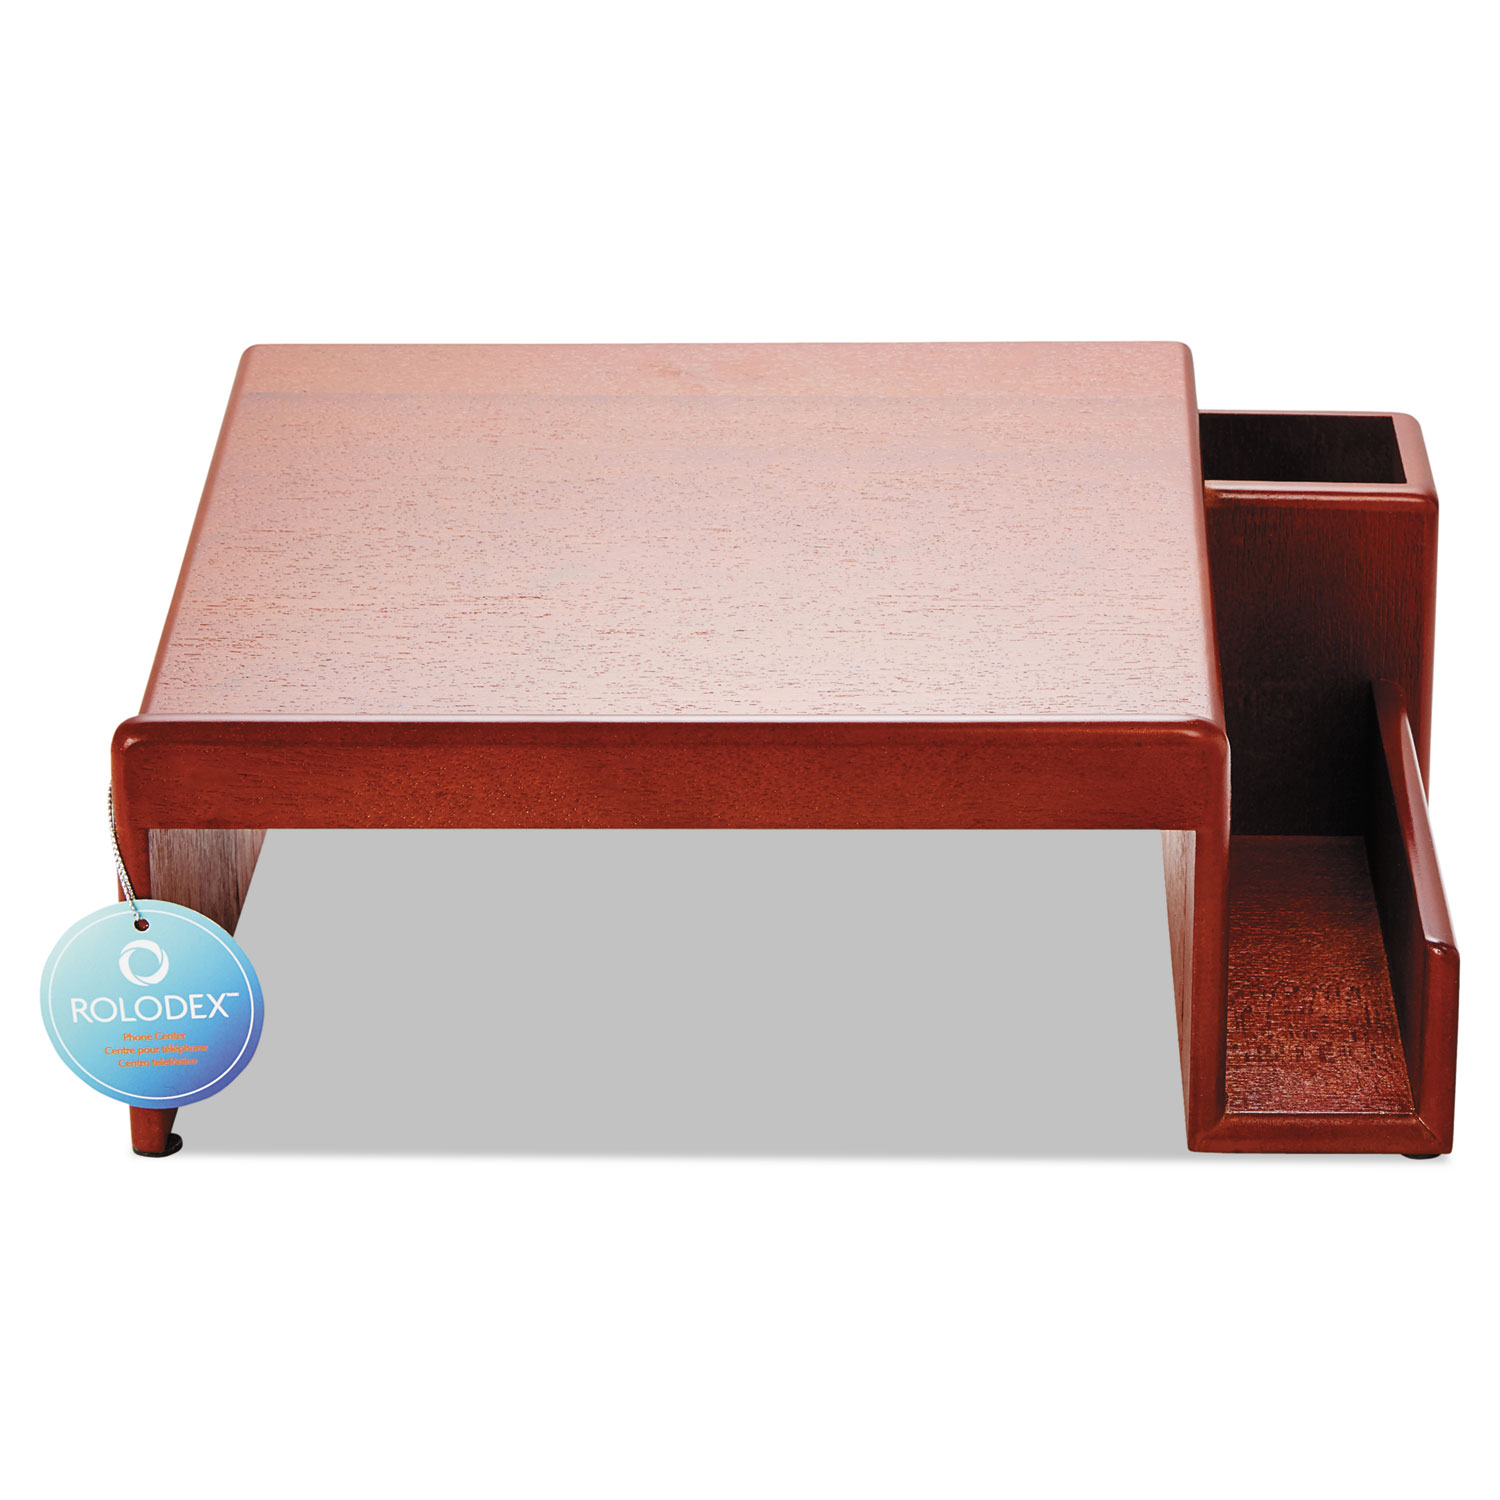 ROL1734646 Rolodex Telephone Stand